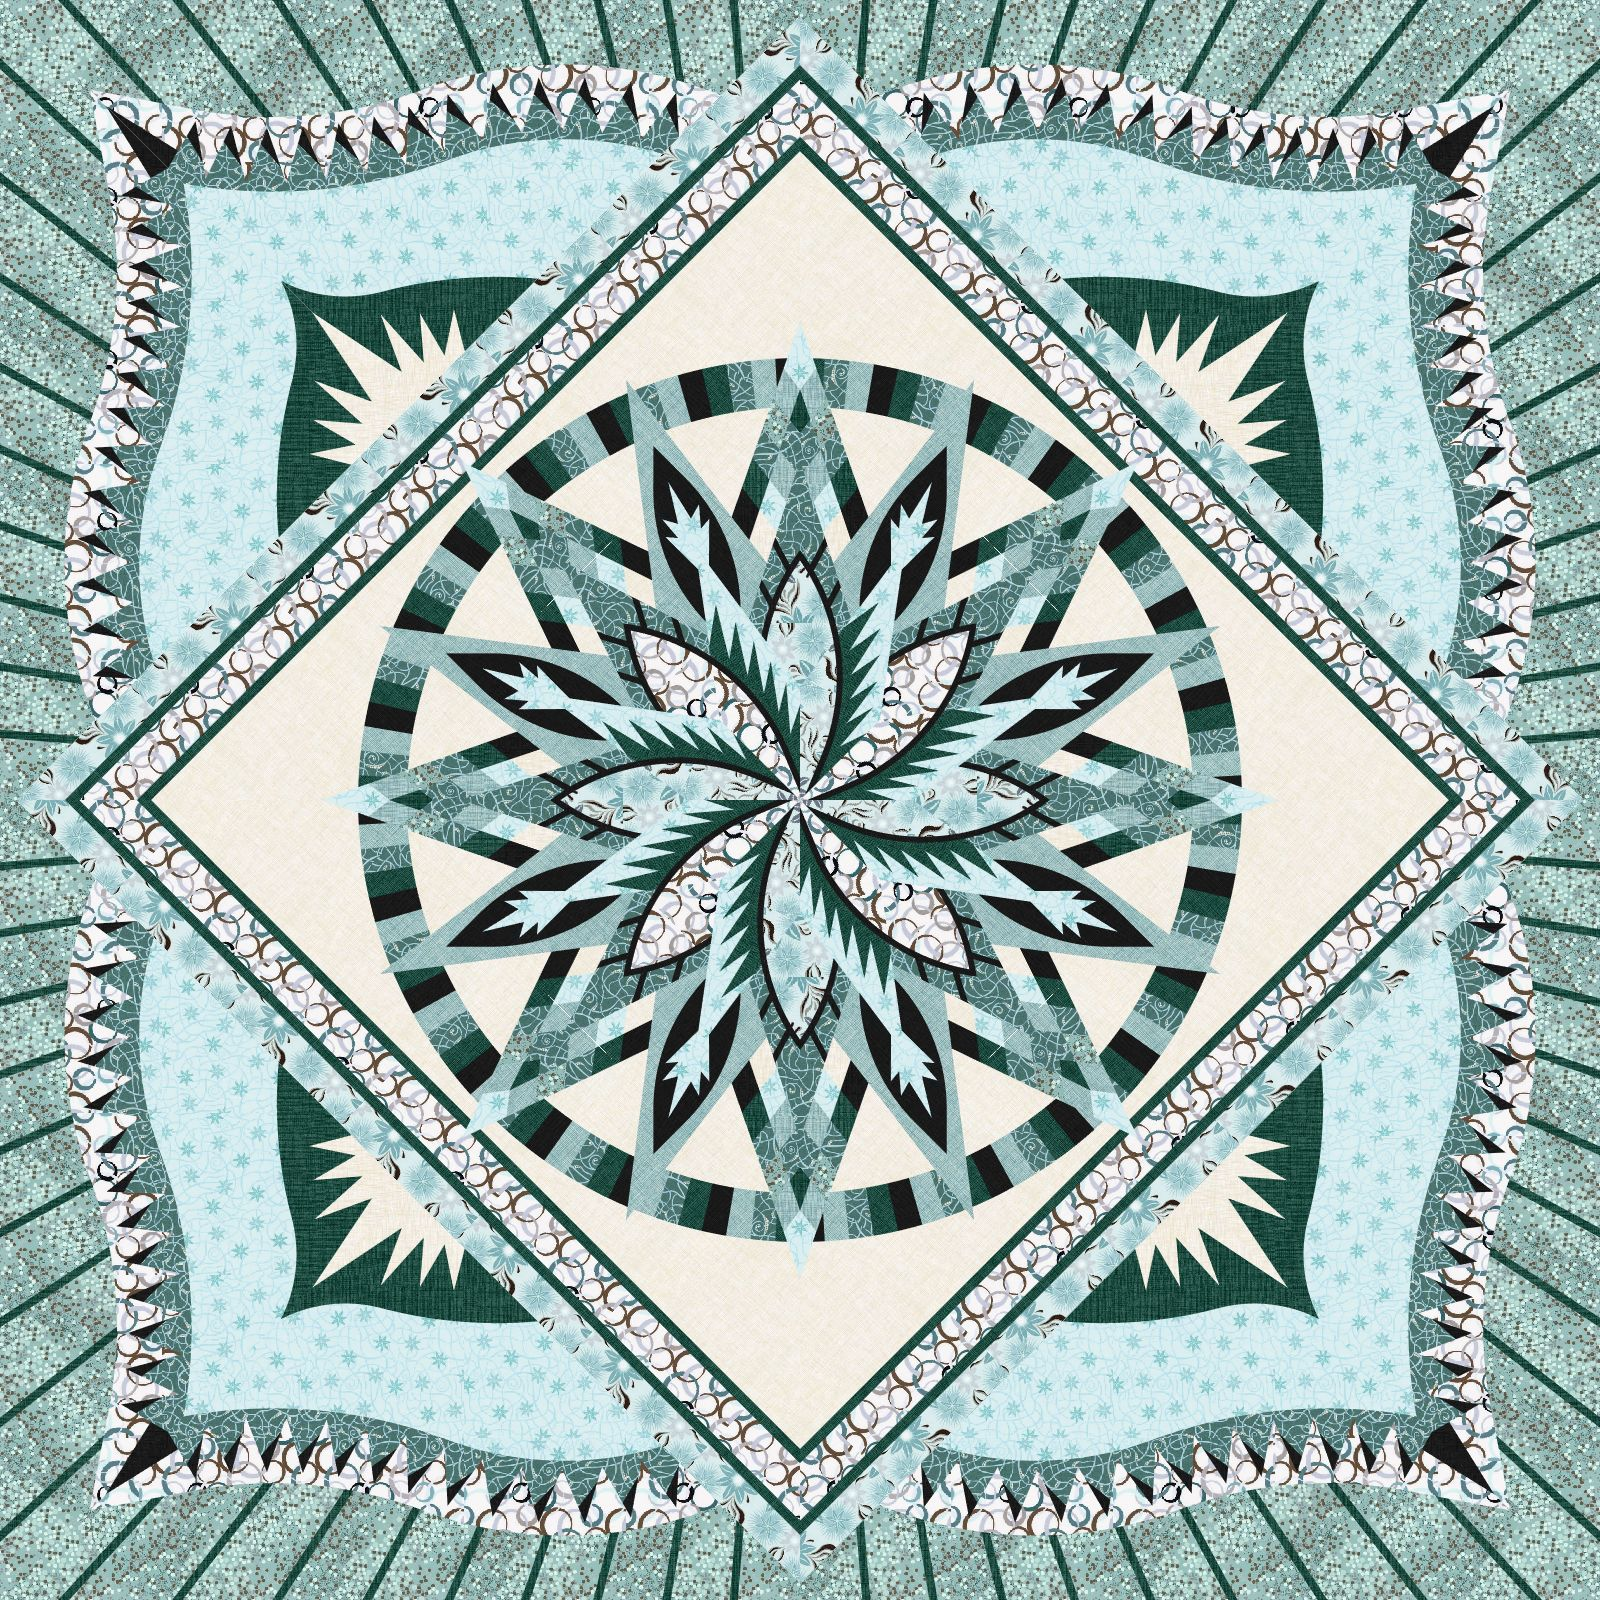 Macaw in the cover quilt colorway.